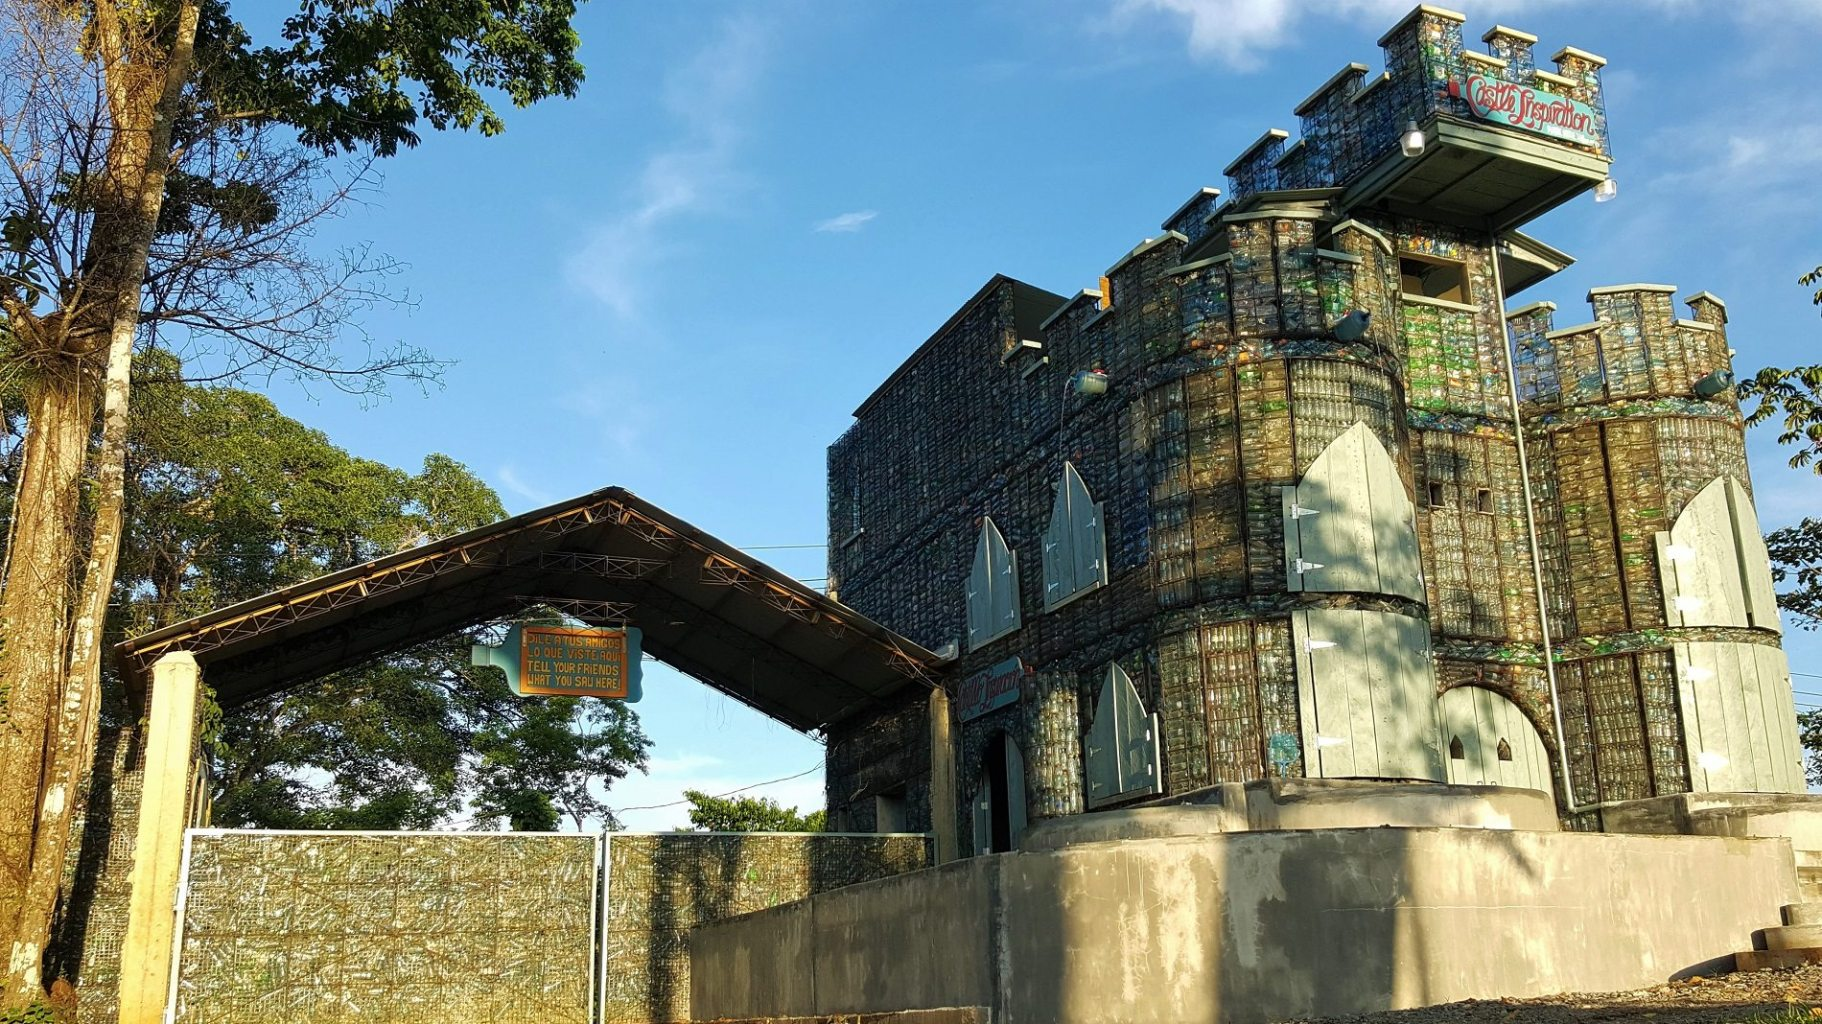 Image: Entrance to the plastic bottle village next to a castle. Both made out of bottles!